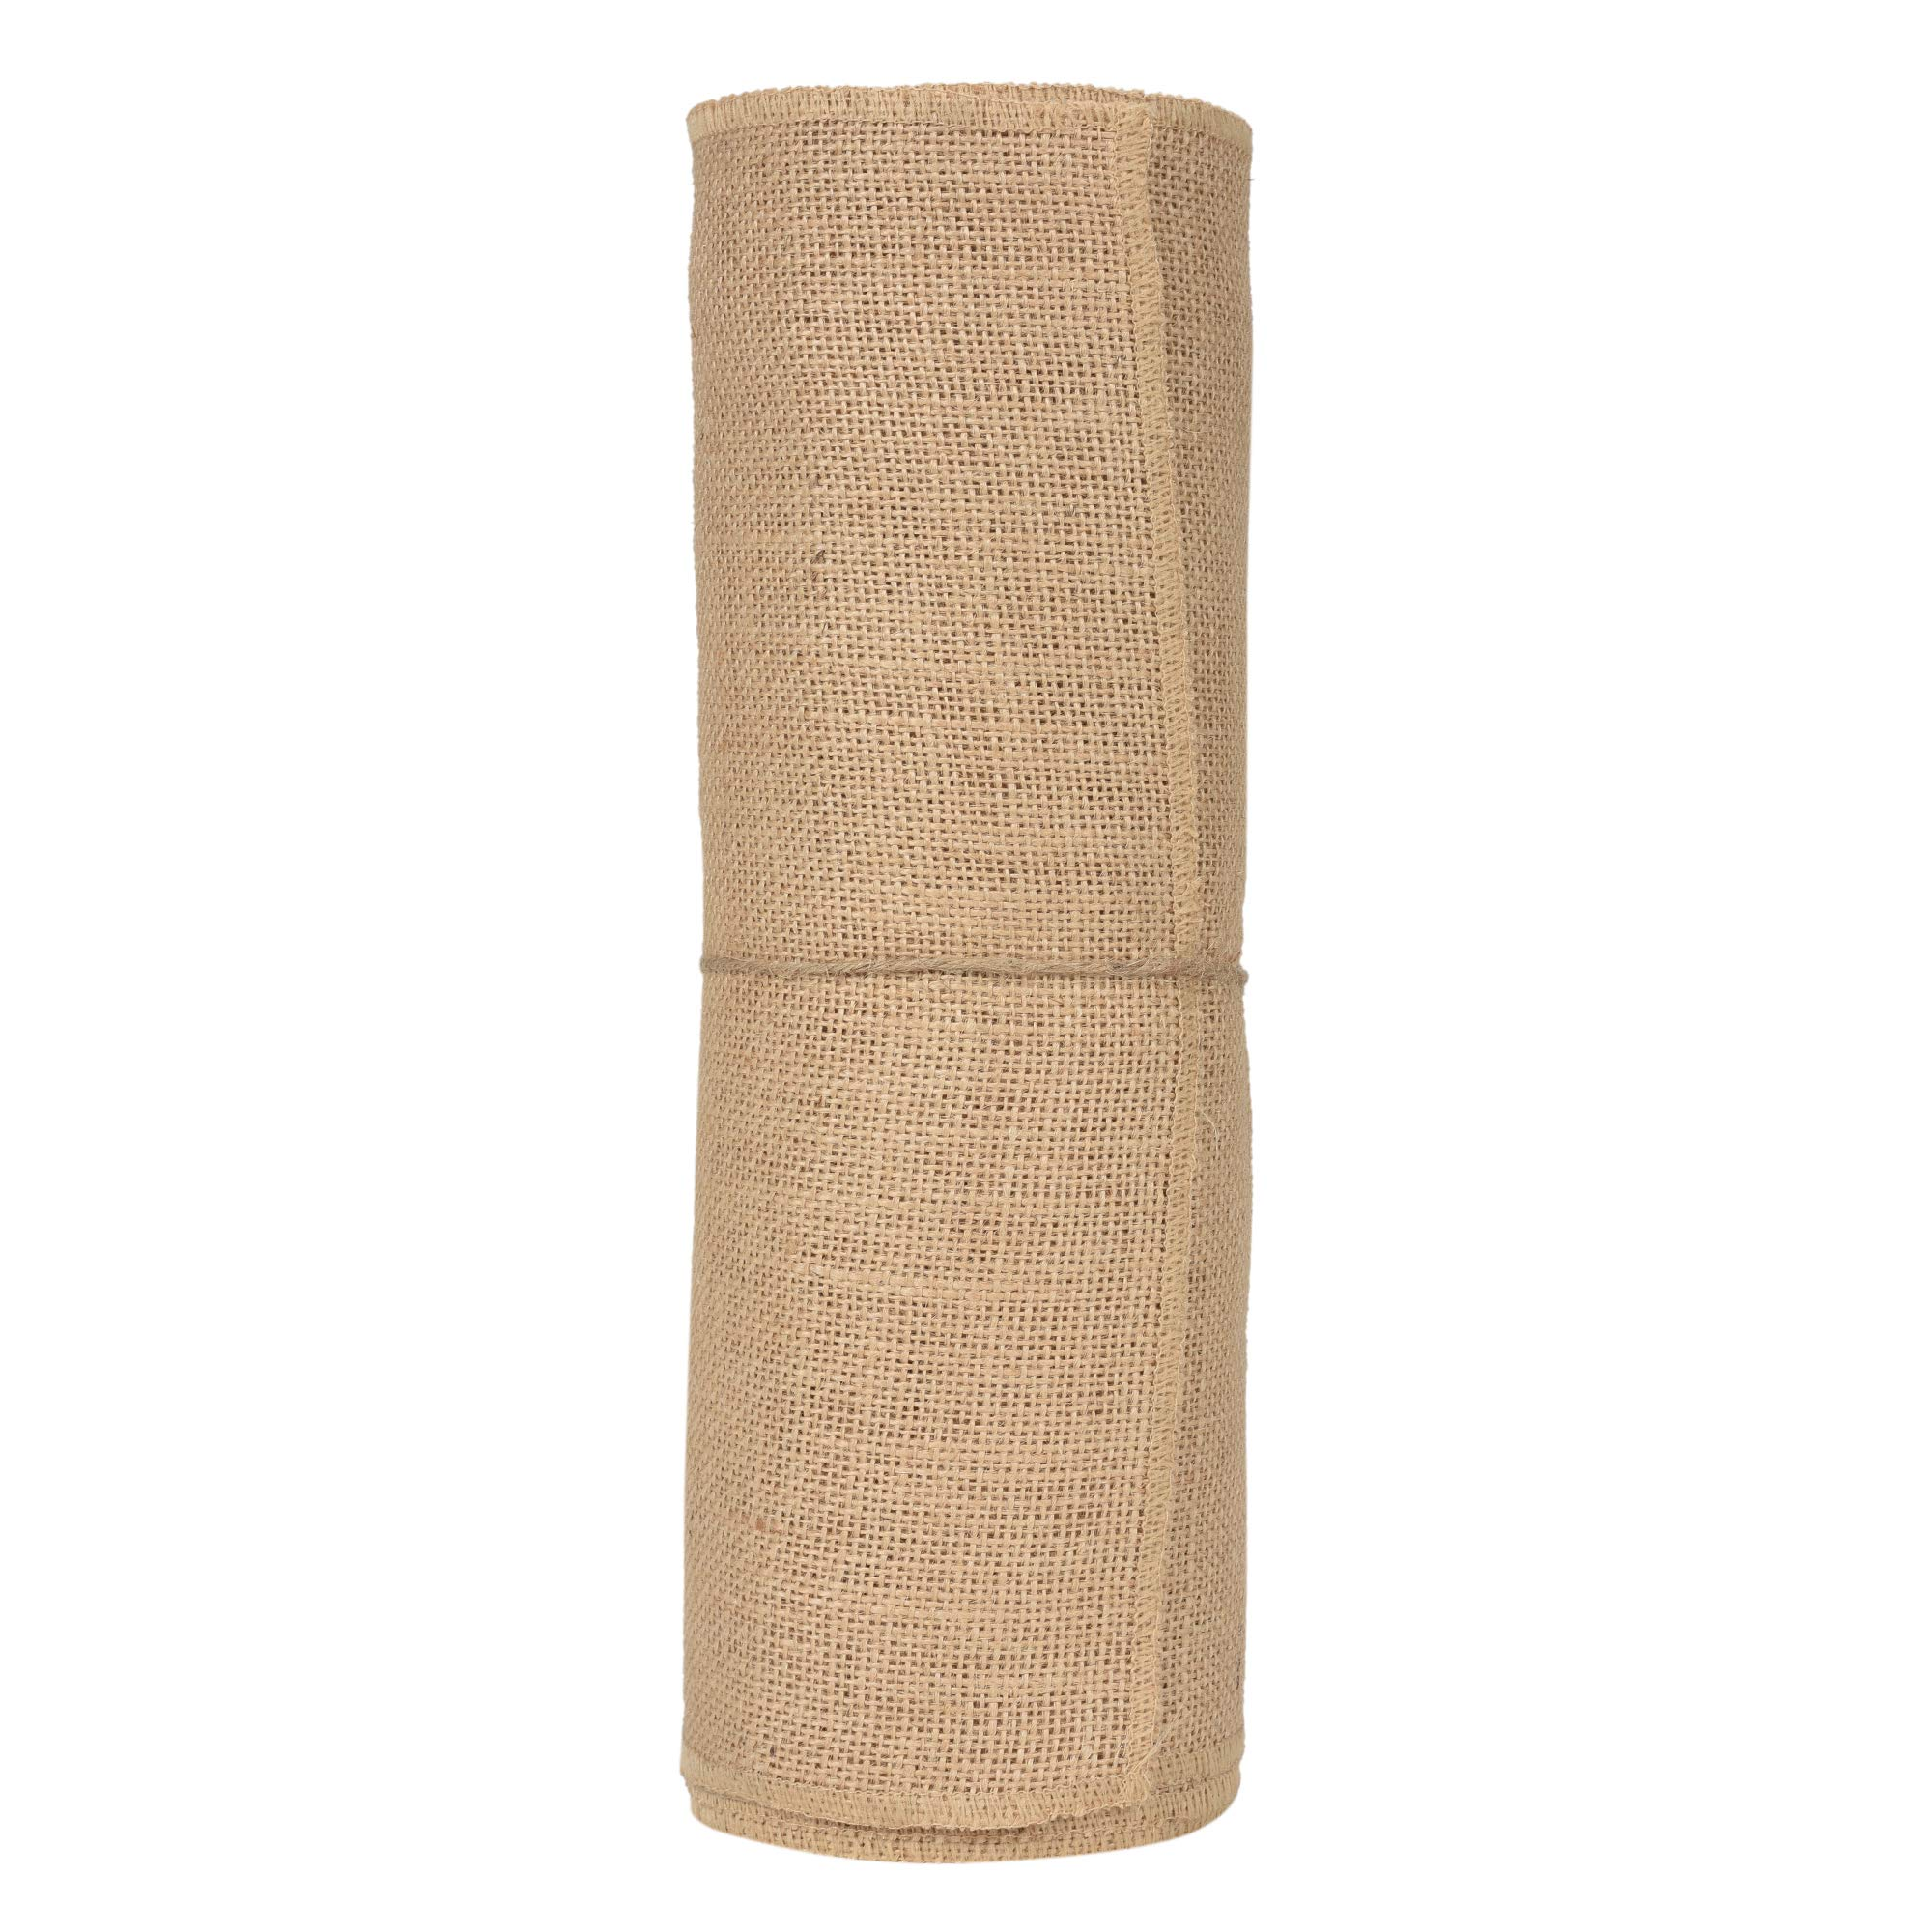 JU JUCOS Burlap ROLL – NO FRAY Burlap ROLL – Burlap Table Runner – Runners, PLACEMENTS, and Crafts – ECO-Friendly Material – Avoid Messes Completely – 12 INCHES by 10 Yards Burlap ROLL